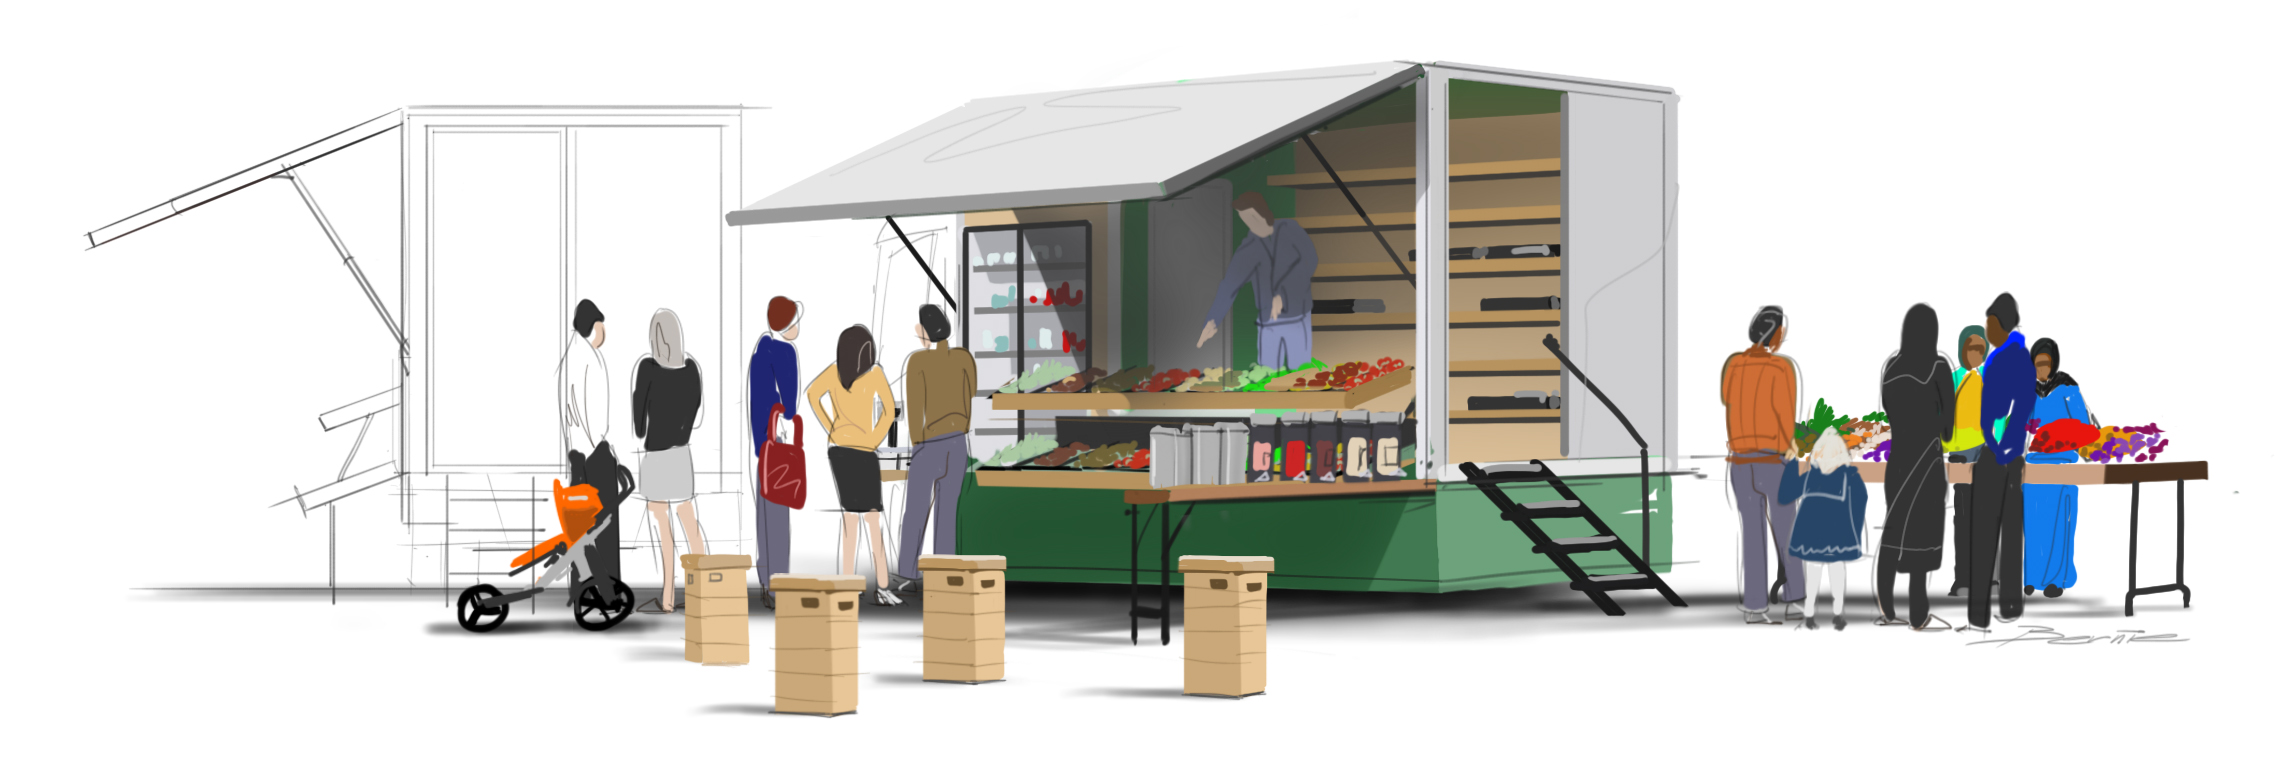 the asrc food justice truck less by design. Black Bedroom Furniture Sets. Home Design Ideas